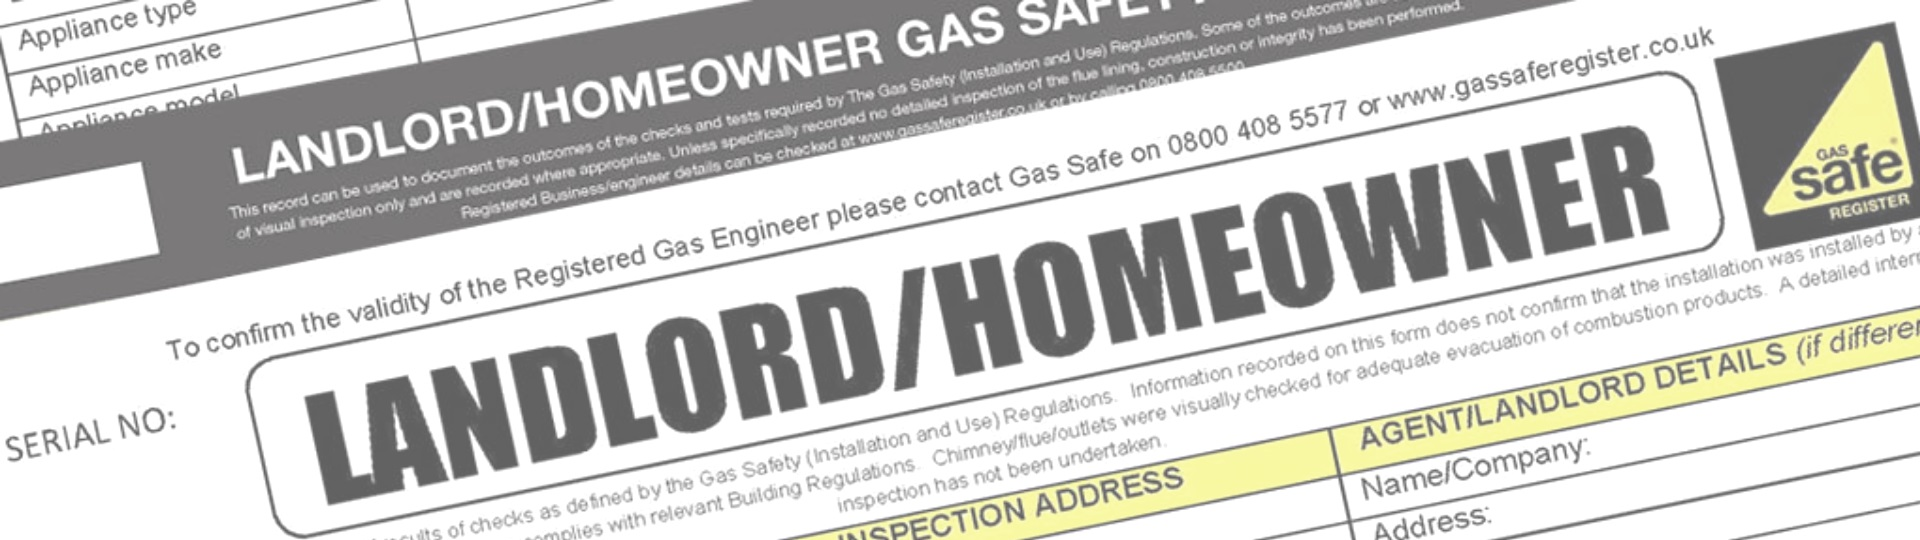 Gas Saftey Certificates Burchells Green